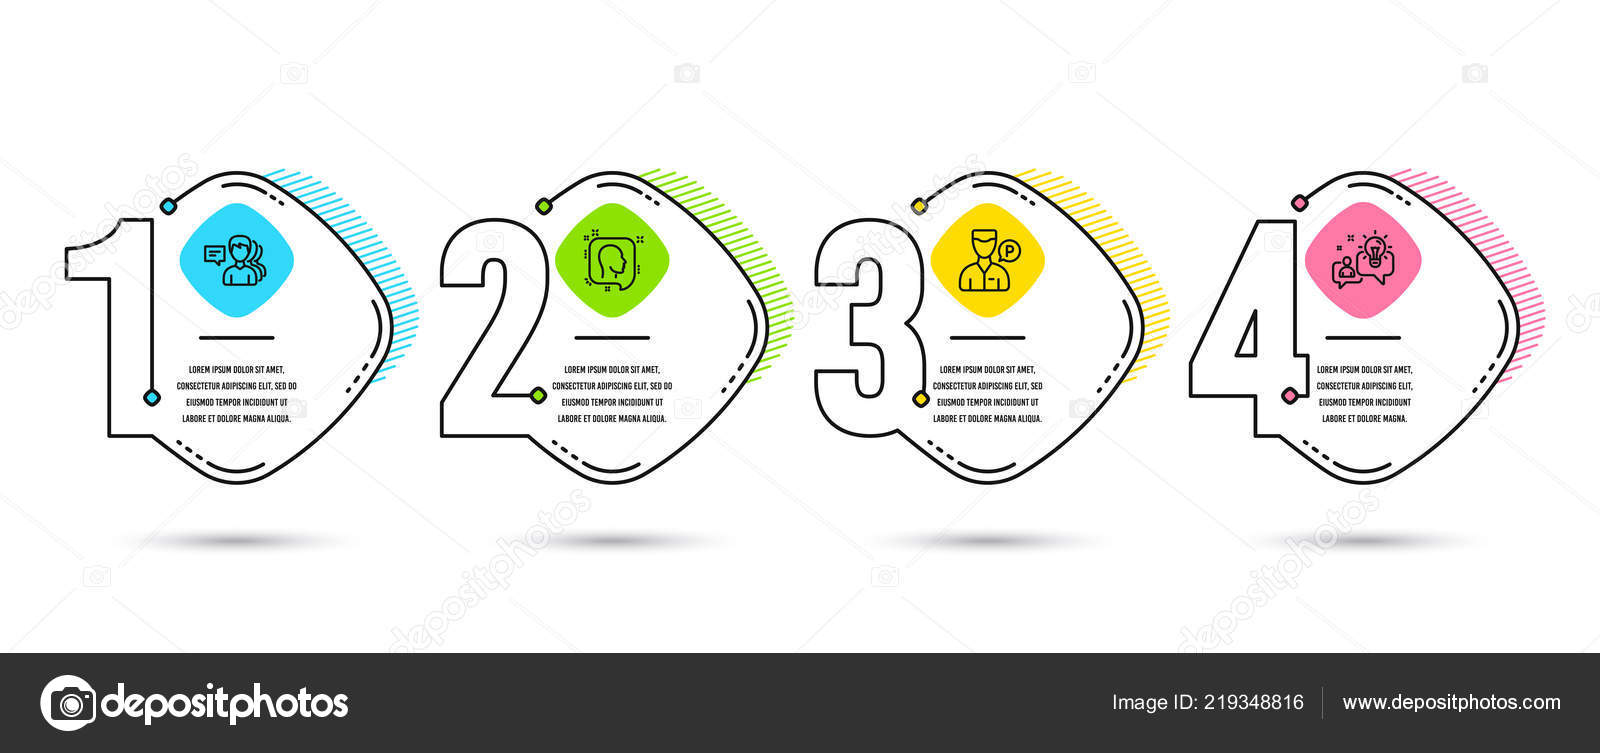 hight resolution of set of people valet servant and head icons idea sign support job parking man profile messages solution process diagram workflow layout